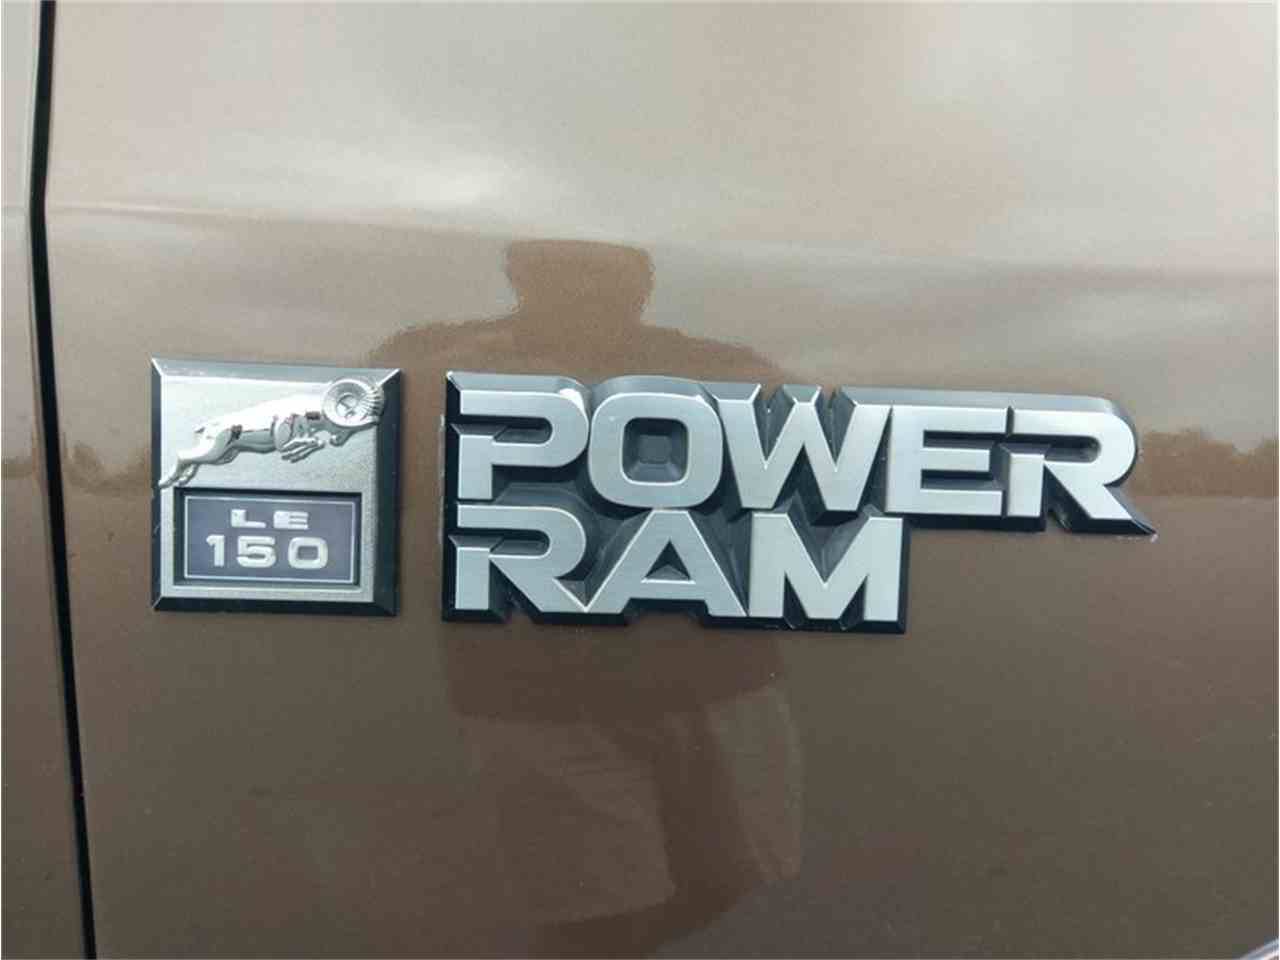 Large Picture of '89 LE 150 Power Ram - LWM2